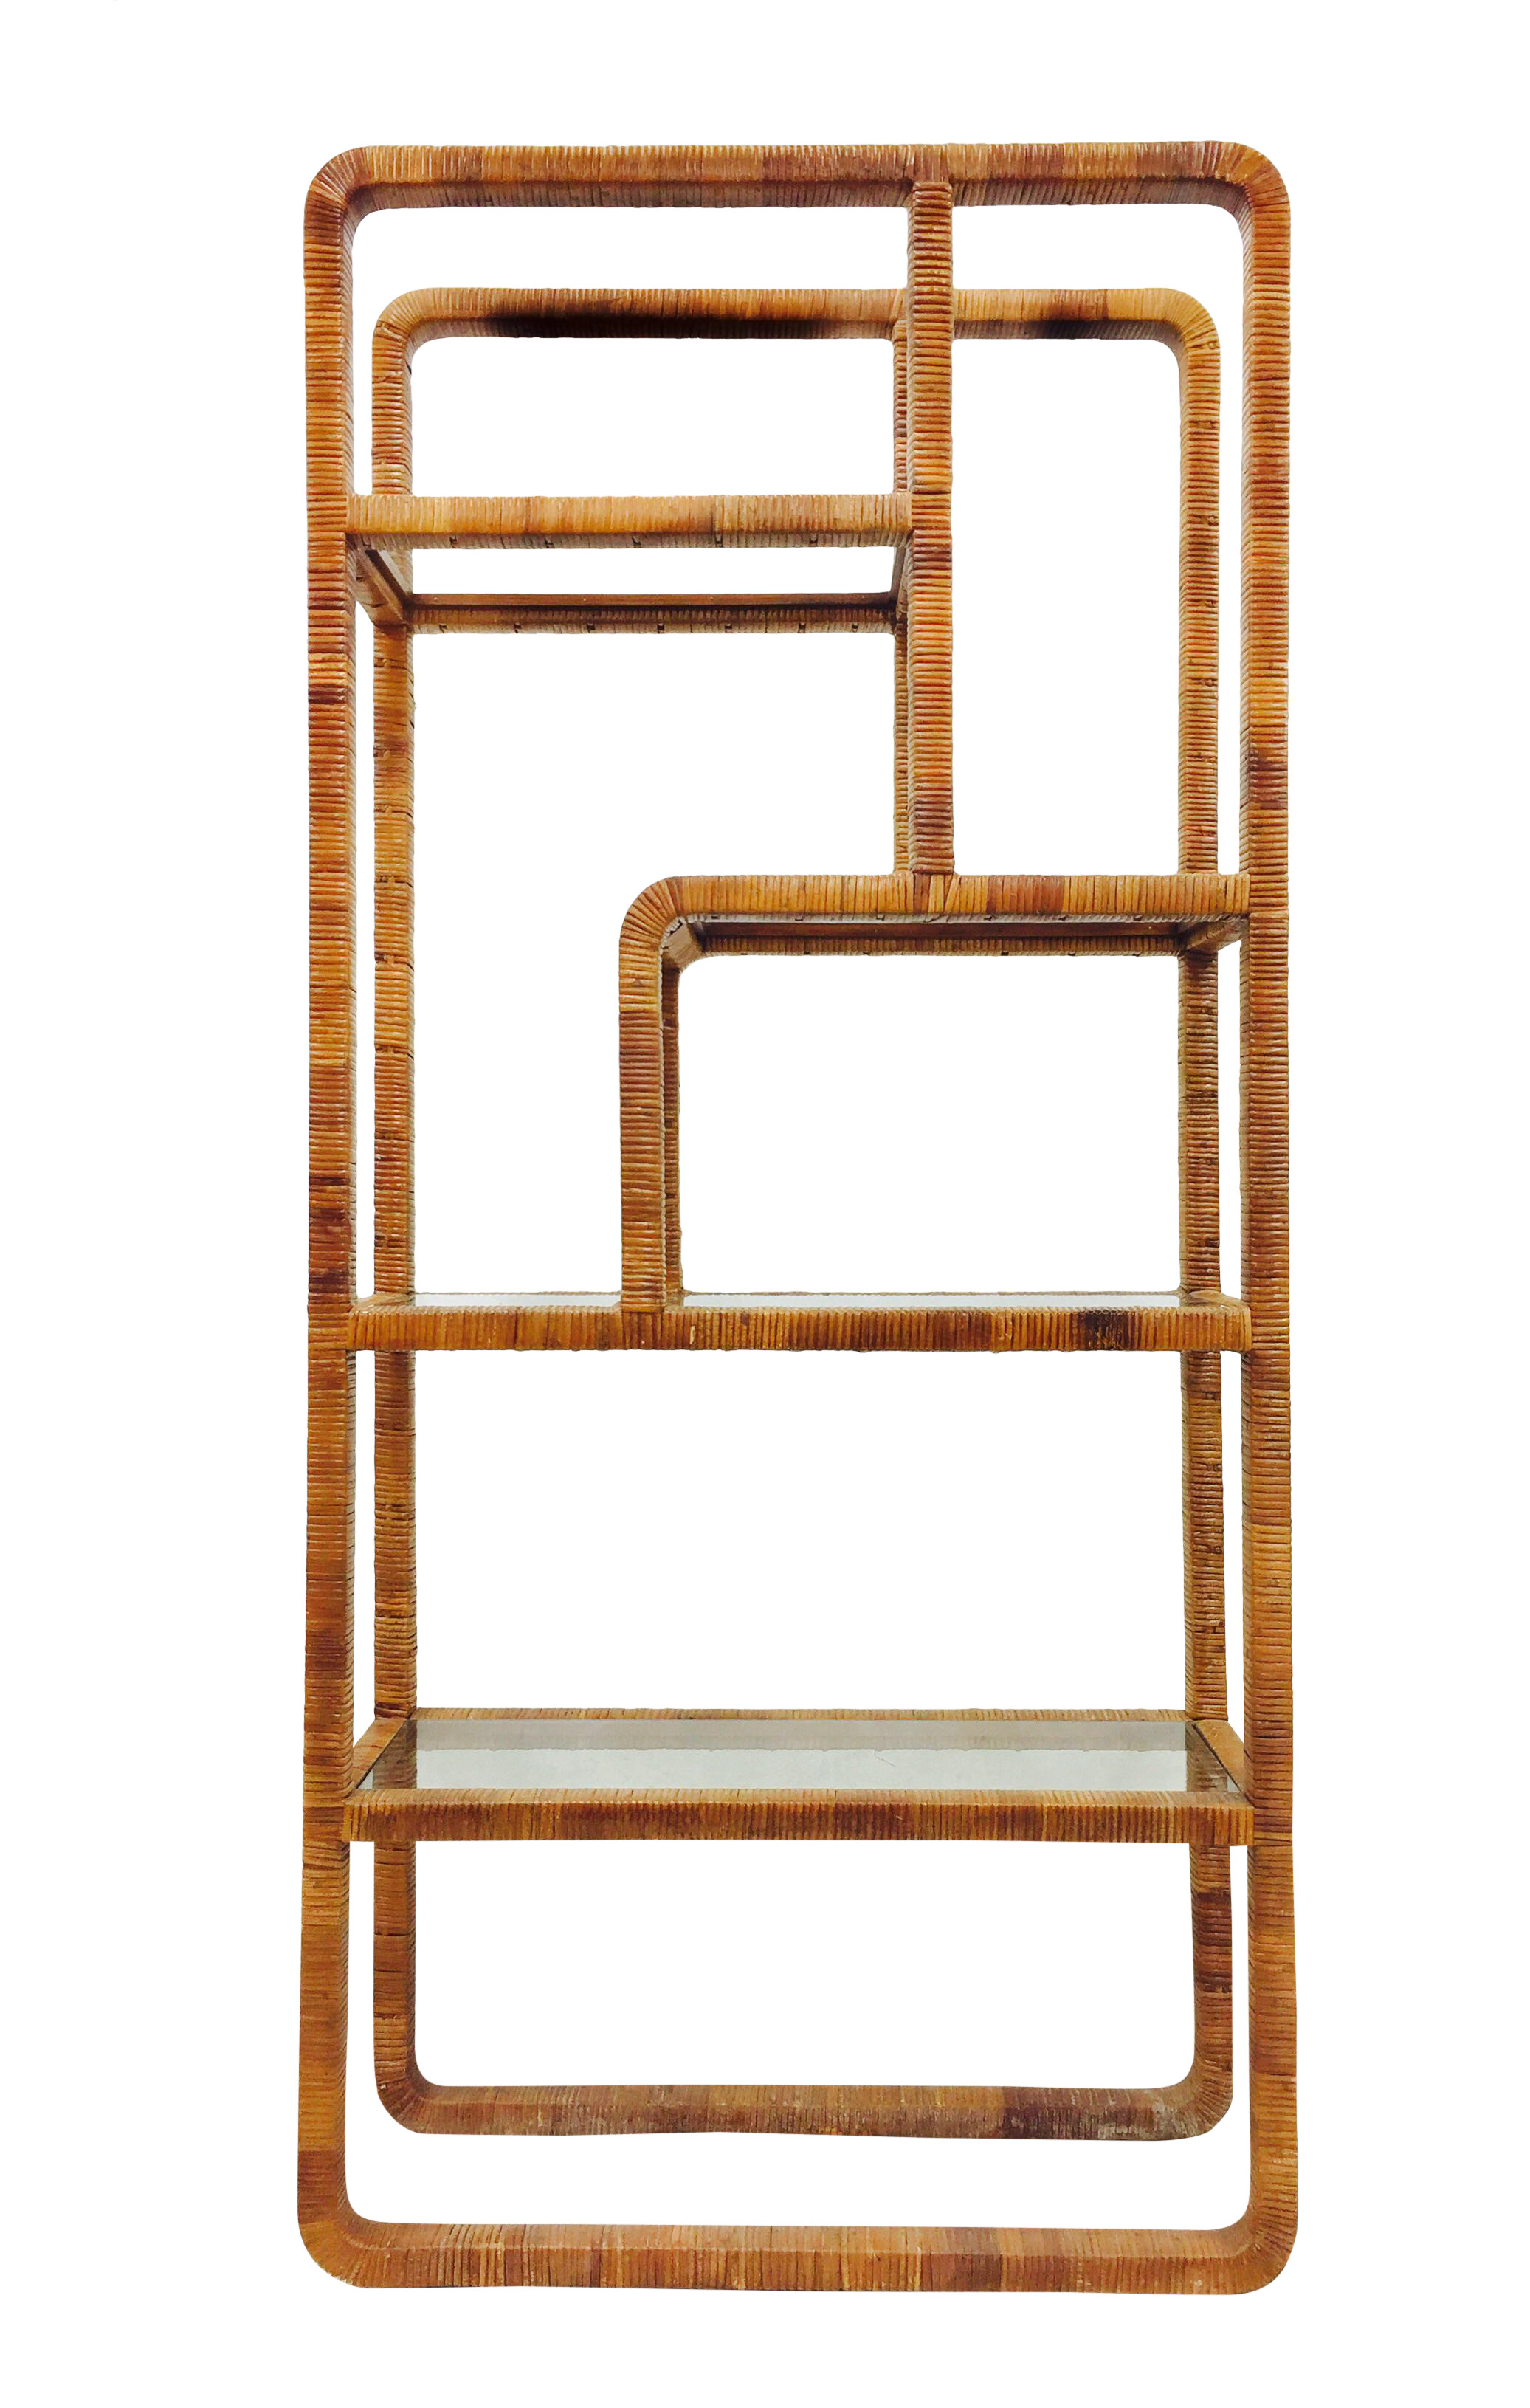 vintage midcentury modern woven wicker u0026 glass etagere shelf